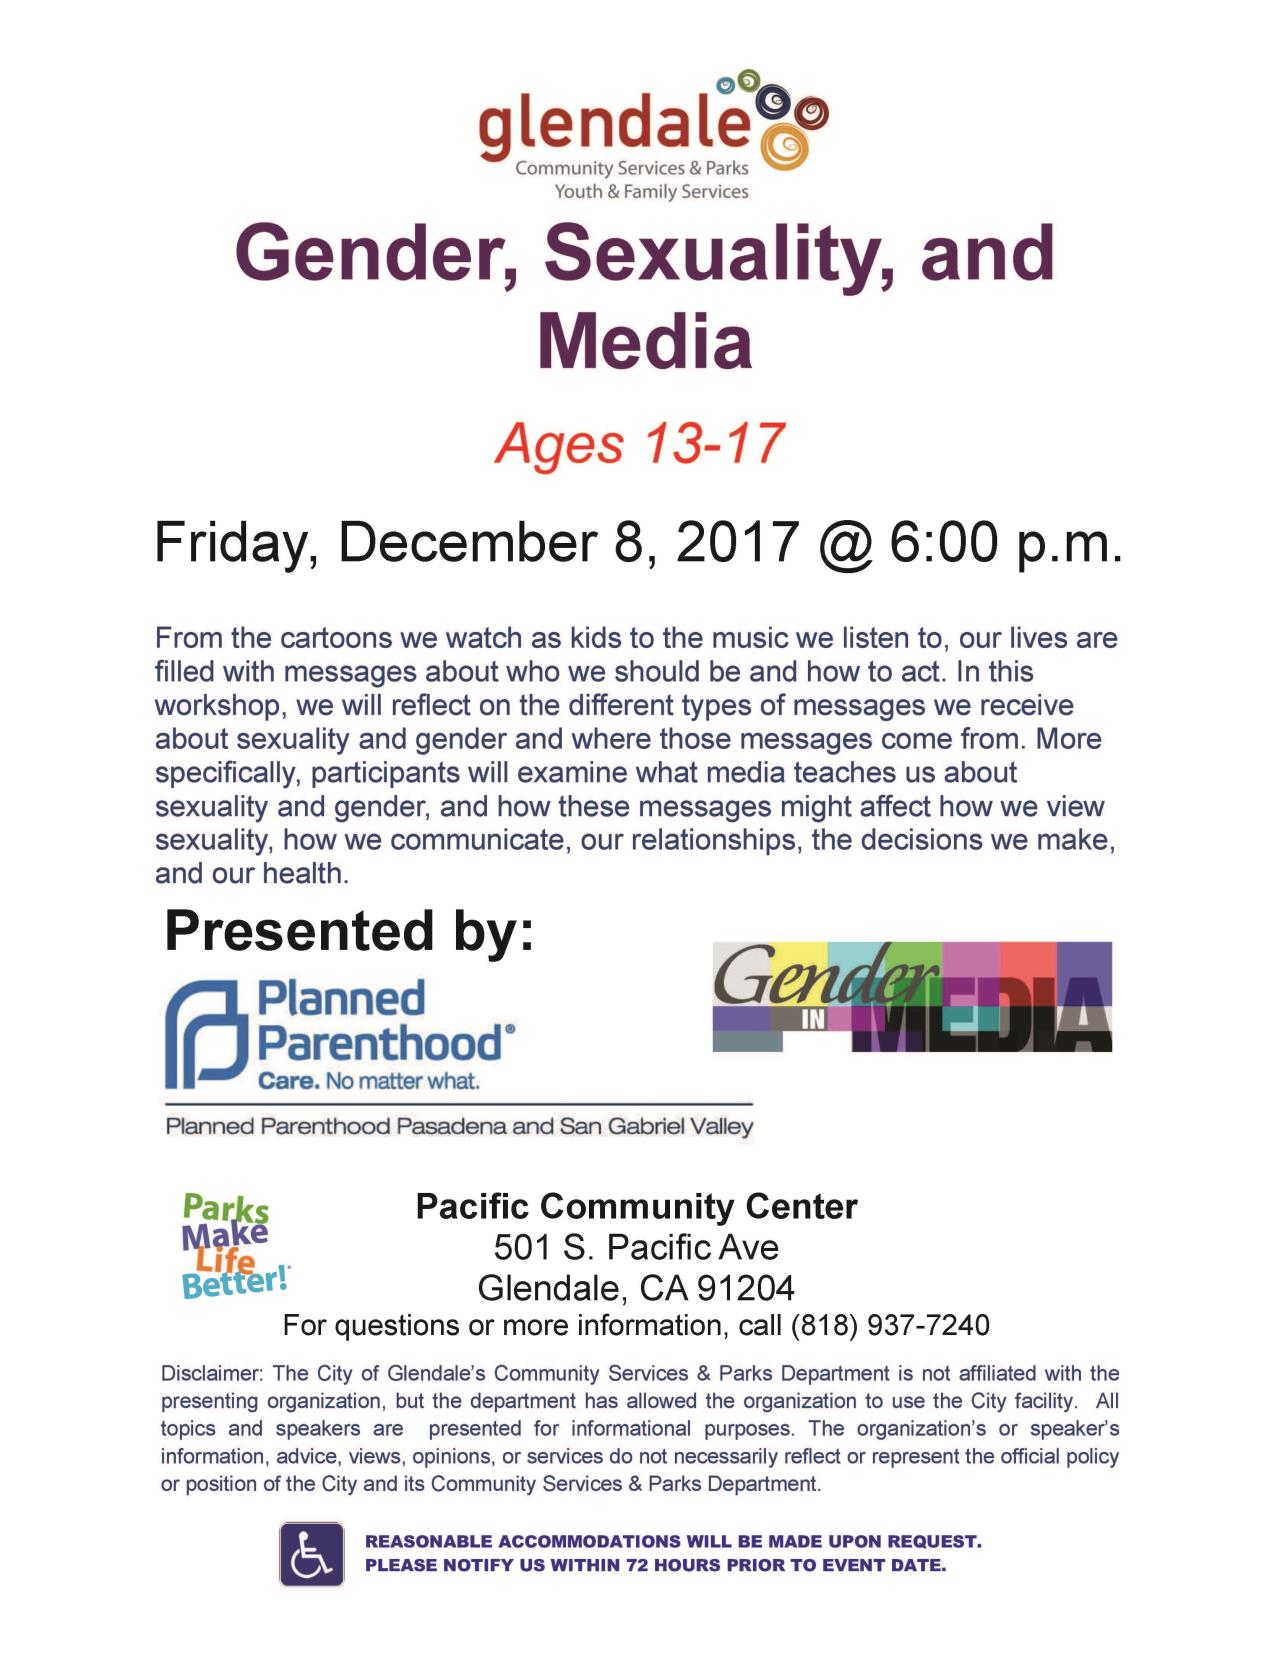 Gender Sexuality and Media 2017